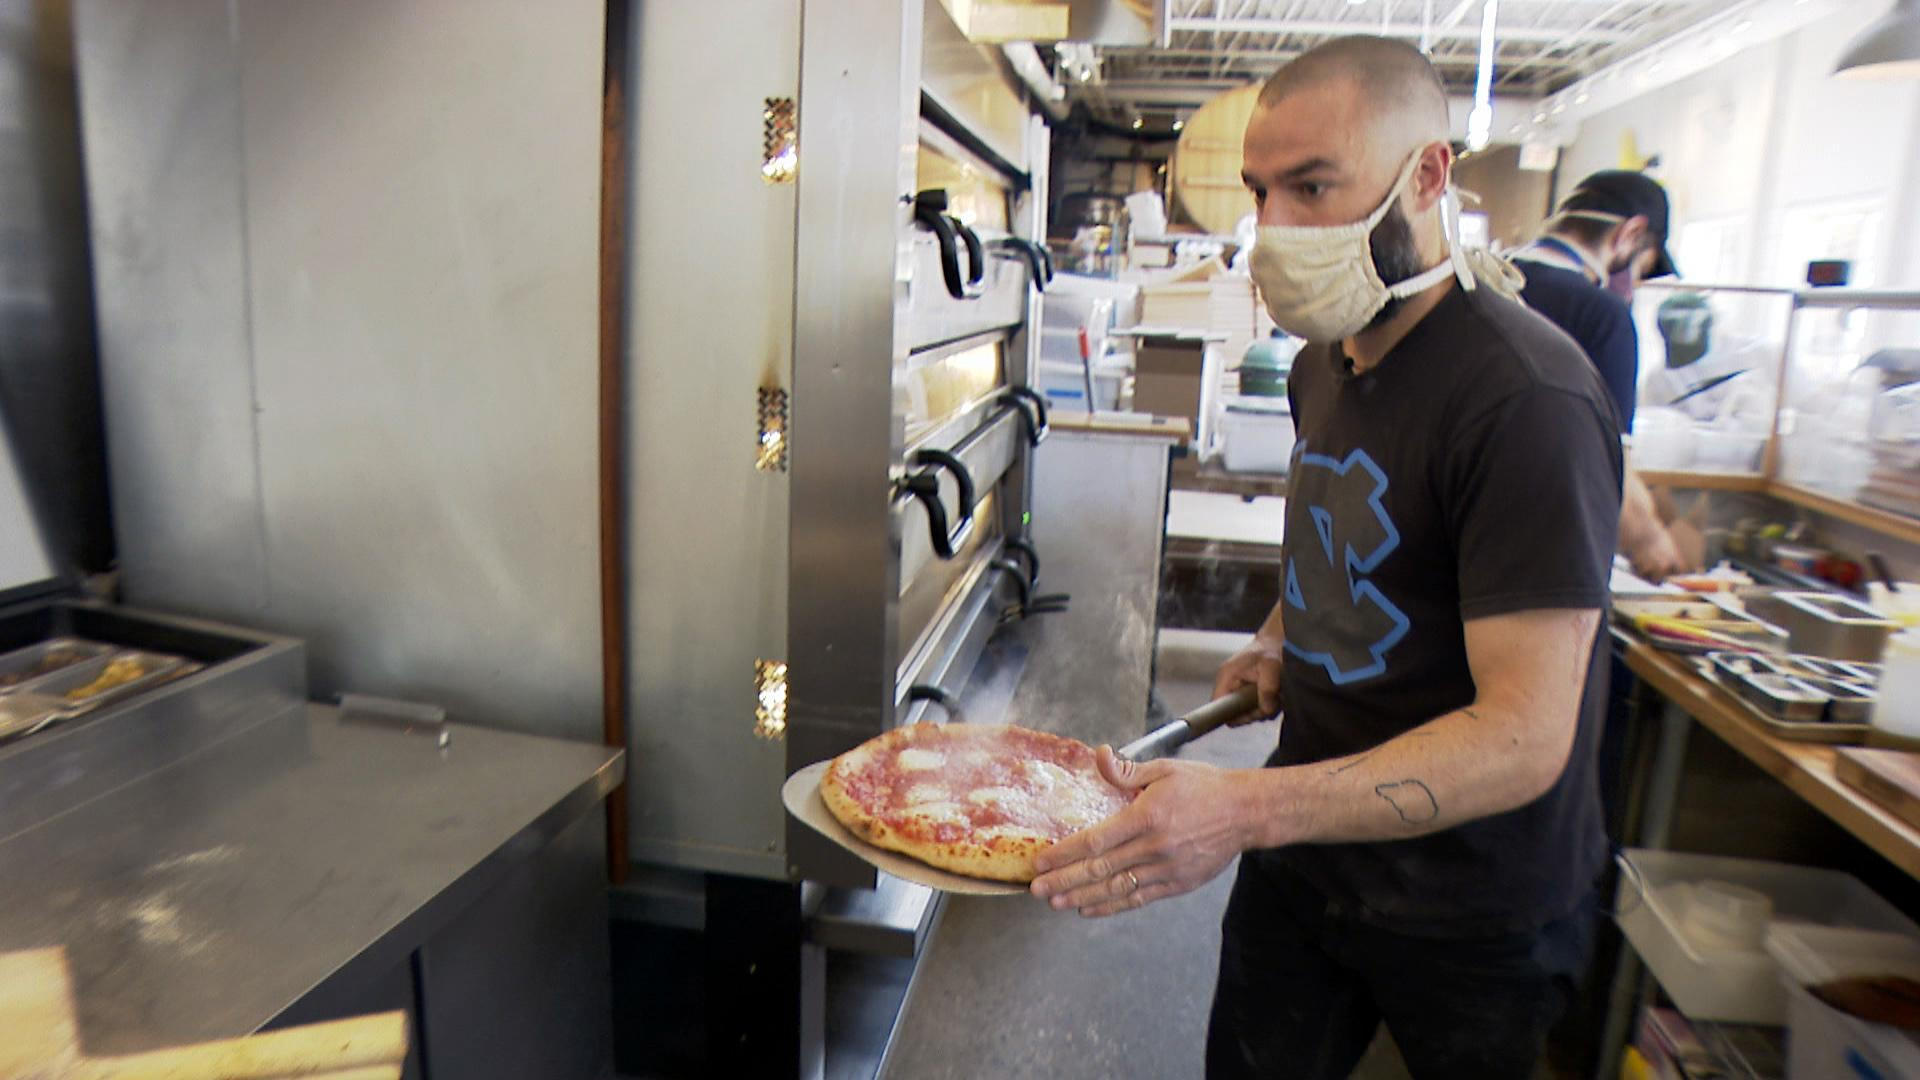 Pete Ternes, owner of the brewpub Bungalow by Middle Brow, takes a pizza out of the Logan Square restaurant's oven on April 30, 2021. Bungalow by Middle Brow is one of several vendors participating in this year's Logan Square Farmers Market. (WTTW News)